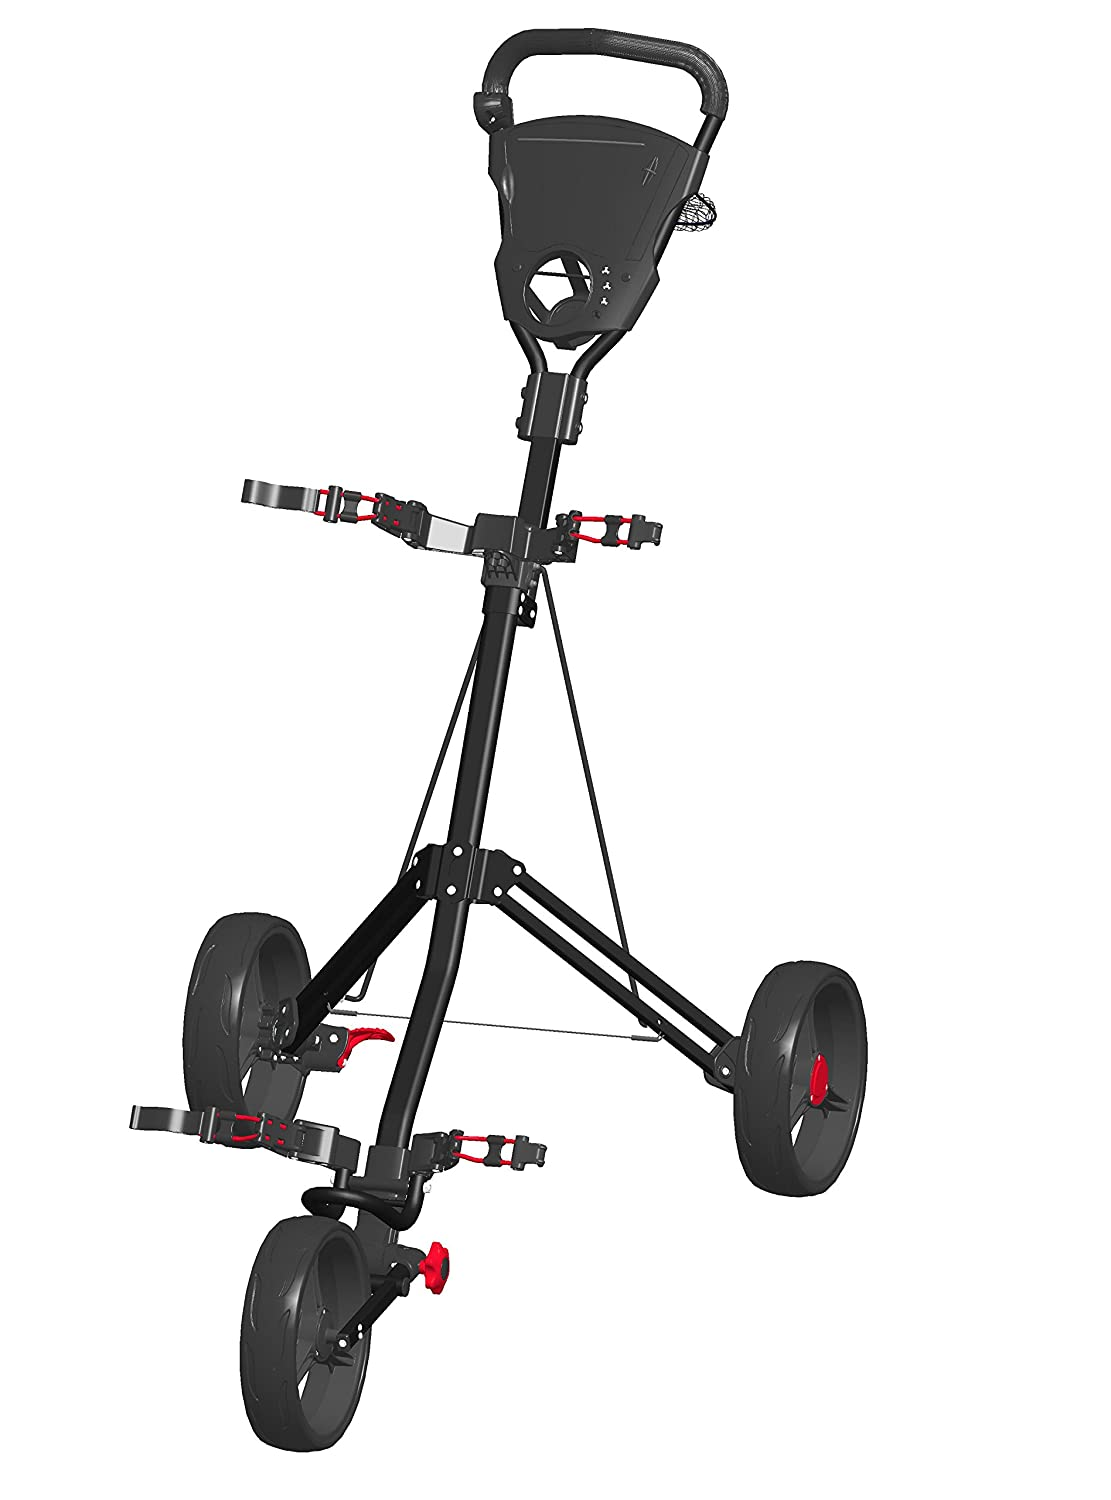 Spin It Golf Products Easy Roll Push Cart, Black шапка true spin true spin tr014cuyrw26